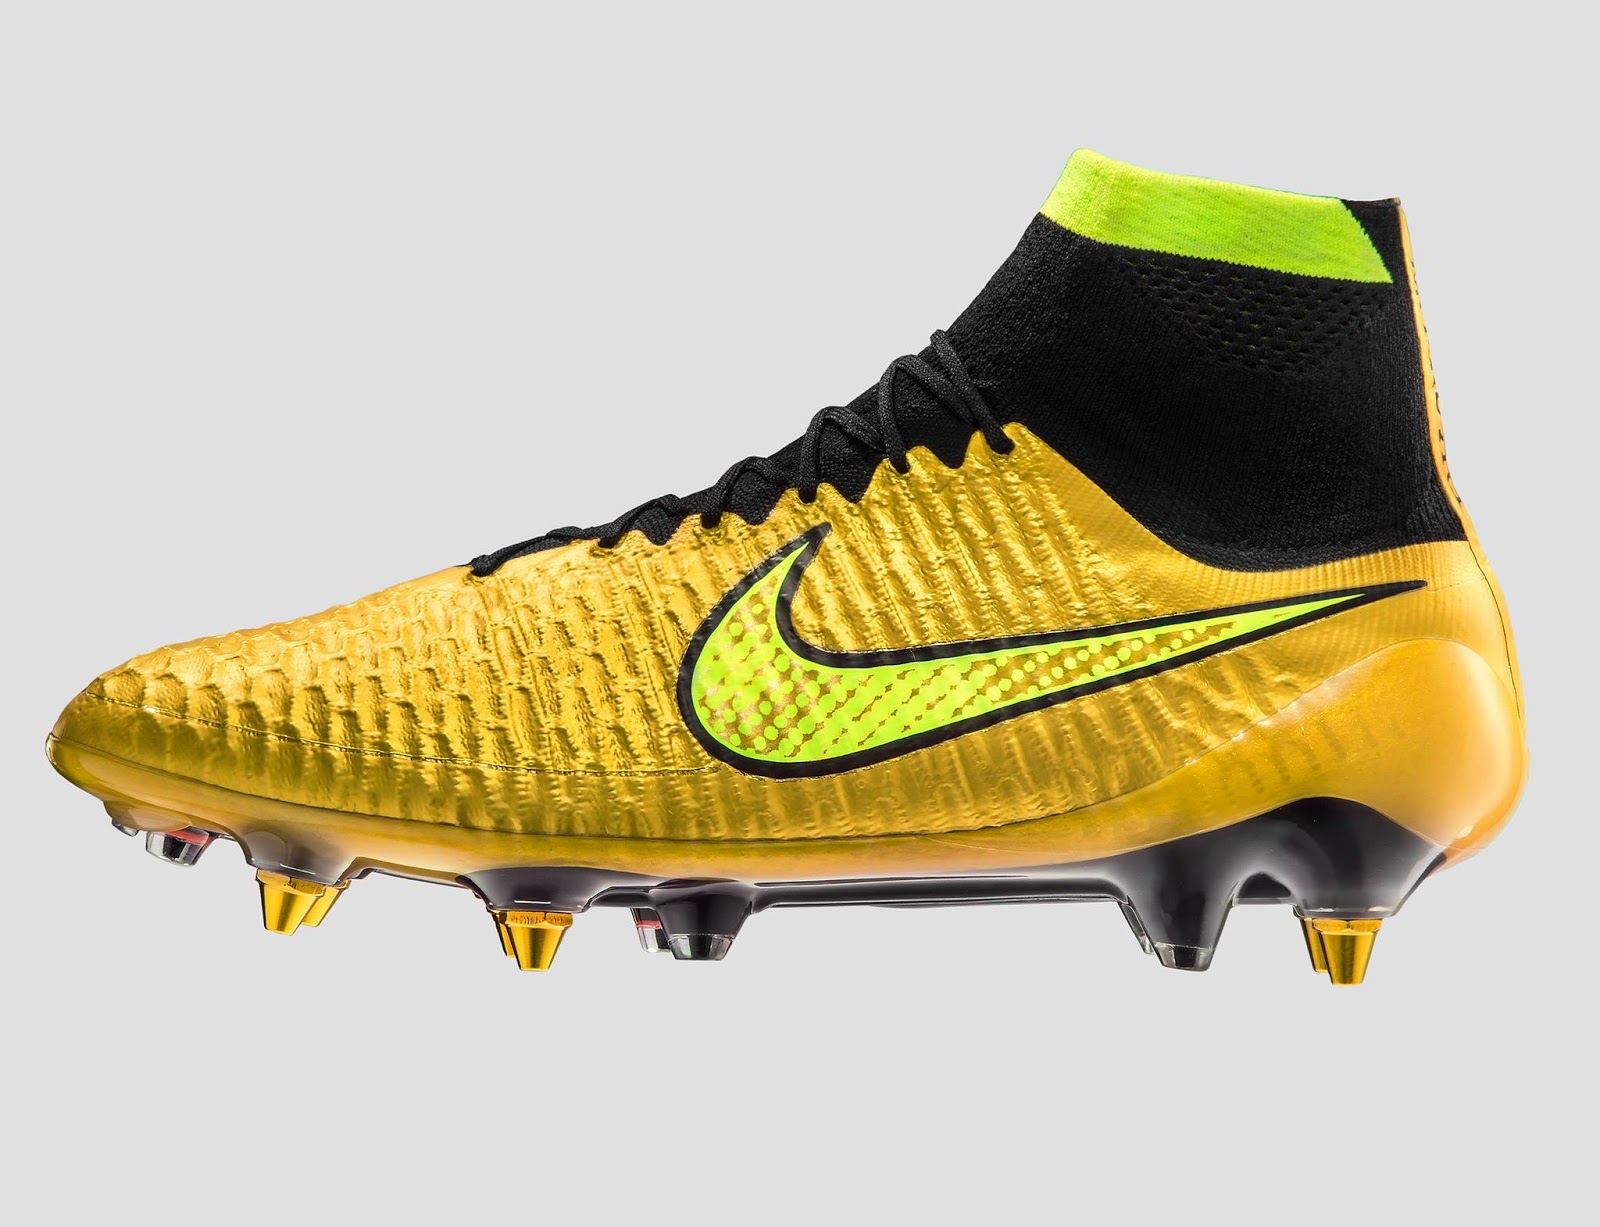 size 40 6c6b3 3410c ... Pack Soccer-Football Boots1 Nike Superfly iD nike id gold high tops .  ...